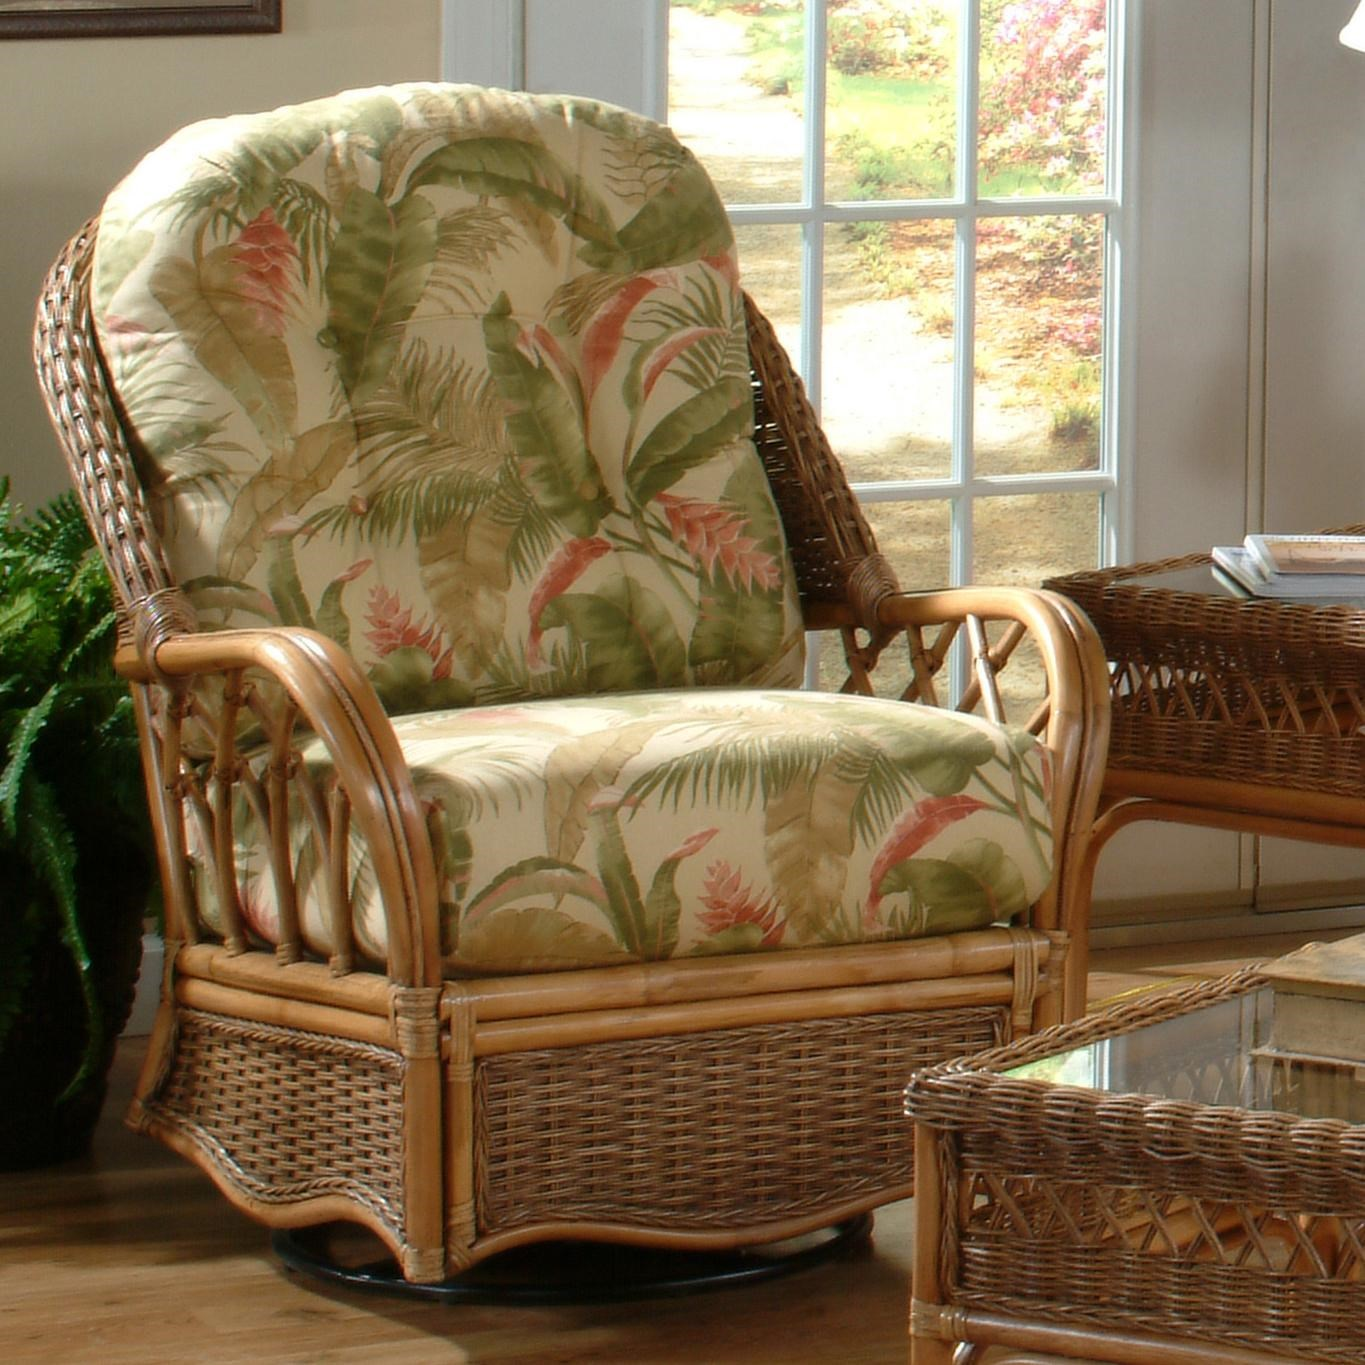 Exceptionnel Braxton Culler Everglade Tropical Style Everglade Swivel Glider Chair